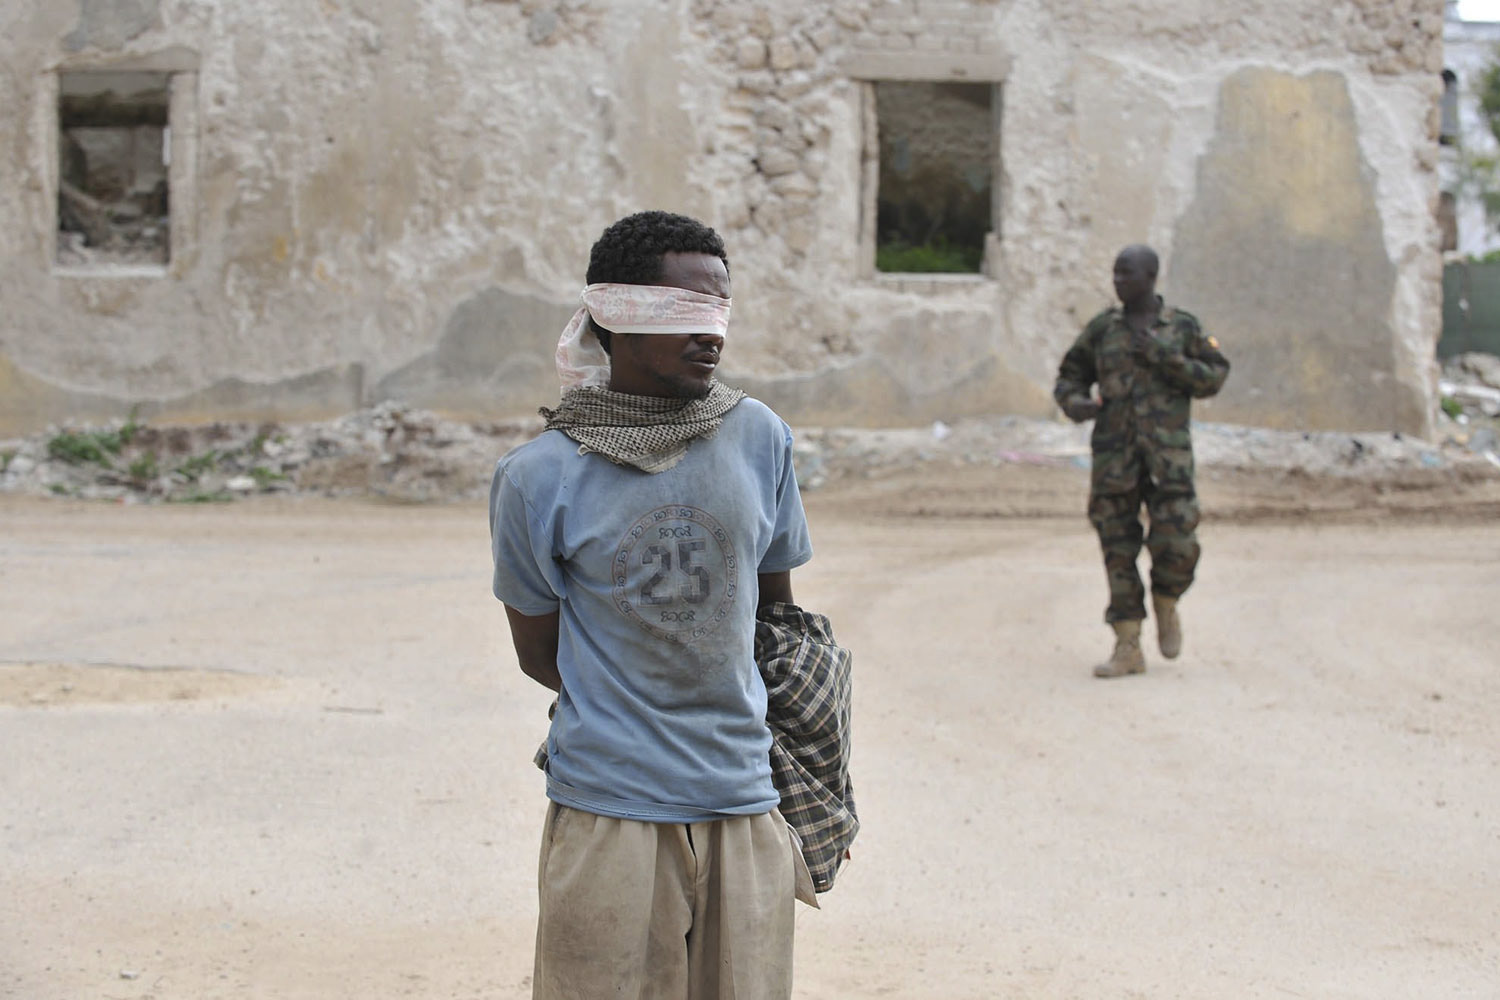 August 6, 2011. A suspected rebel member of Al-Shabab was captured by Amisom (African mission in Somalia) in Mogadishu shortly after the militant group withdrew from the last four districts that they held after heavy fighting through out the night.